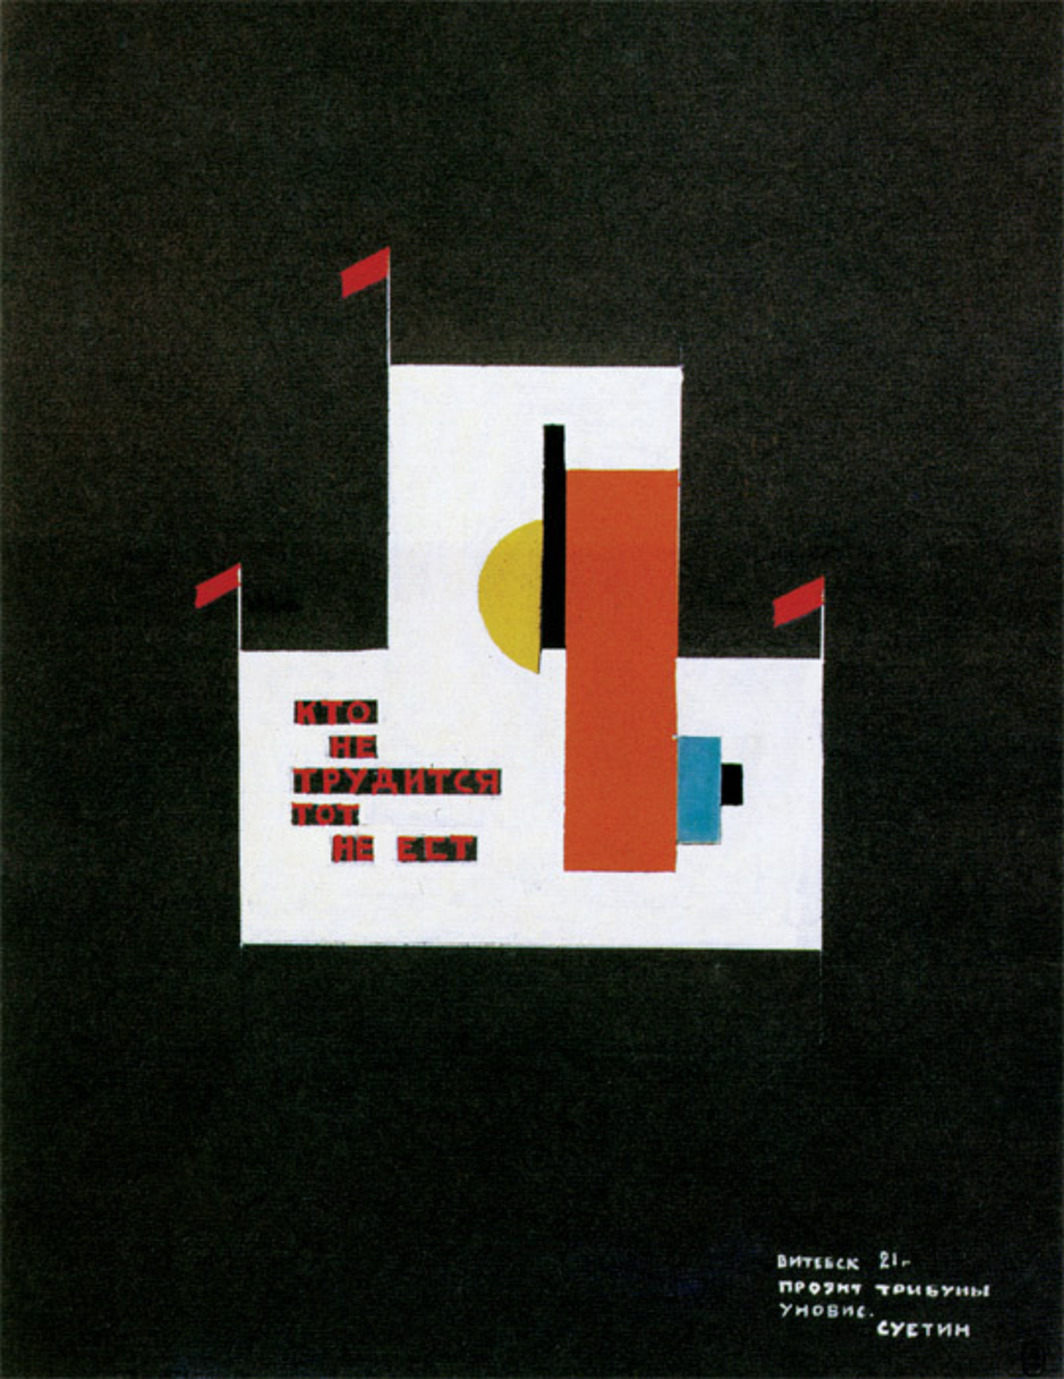 "Nikolai Suetin, design for a Unovis podium, 1921, gouache and whitening on black paper, 14 x 10 1/2""."